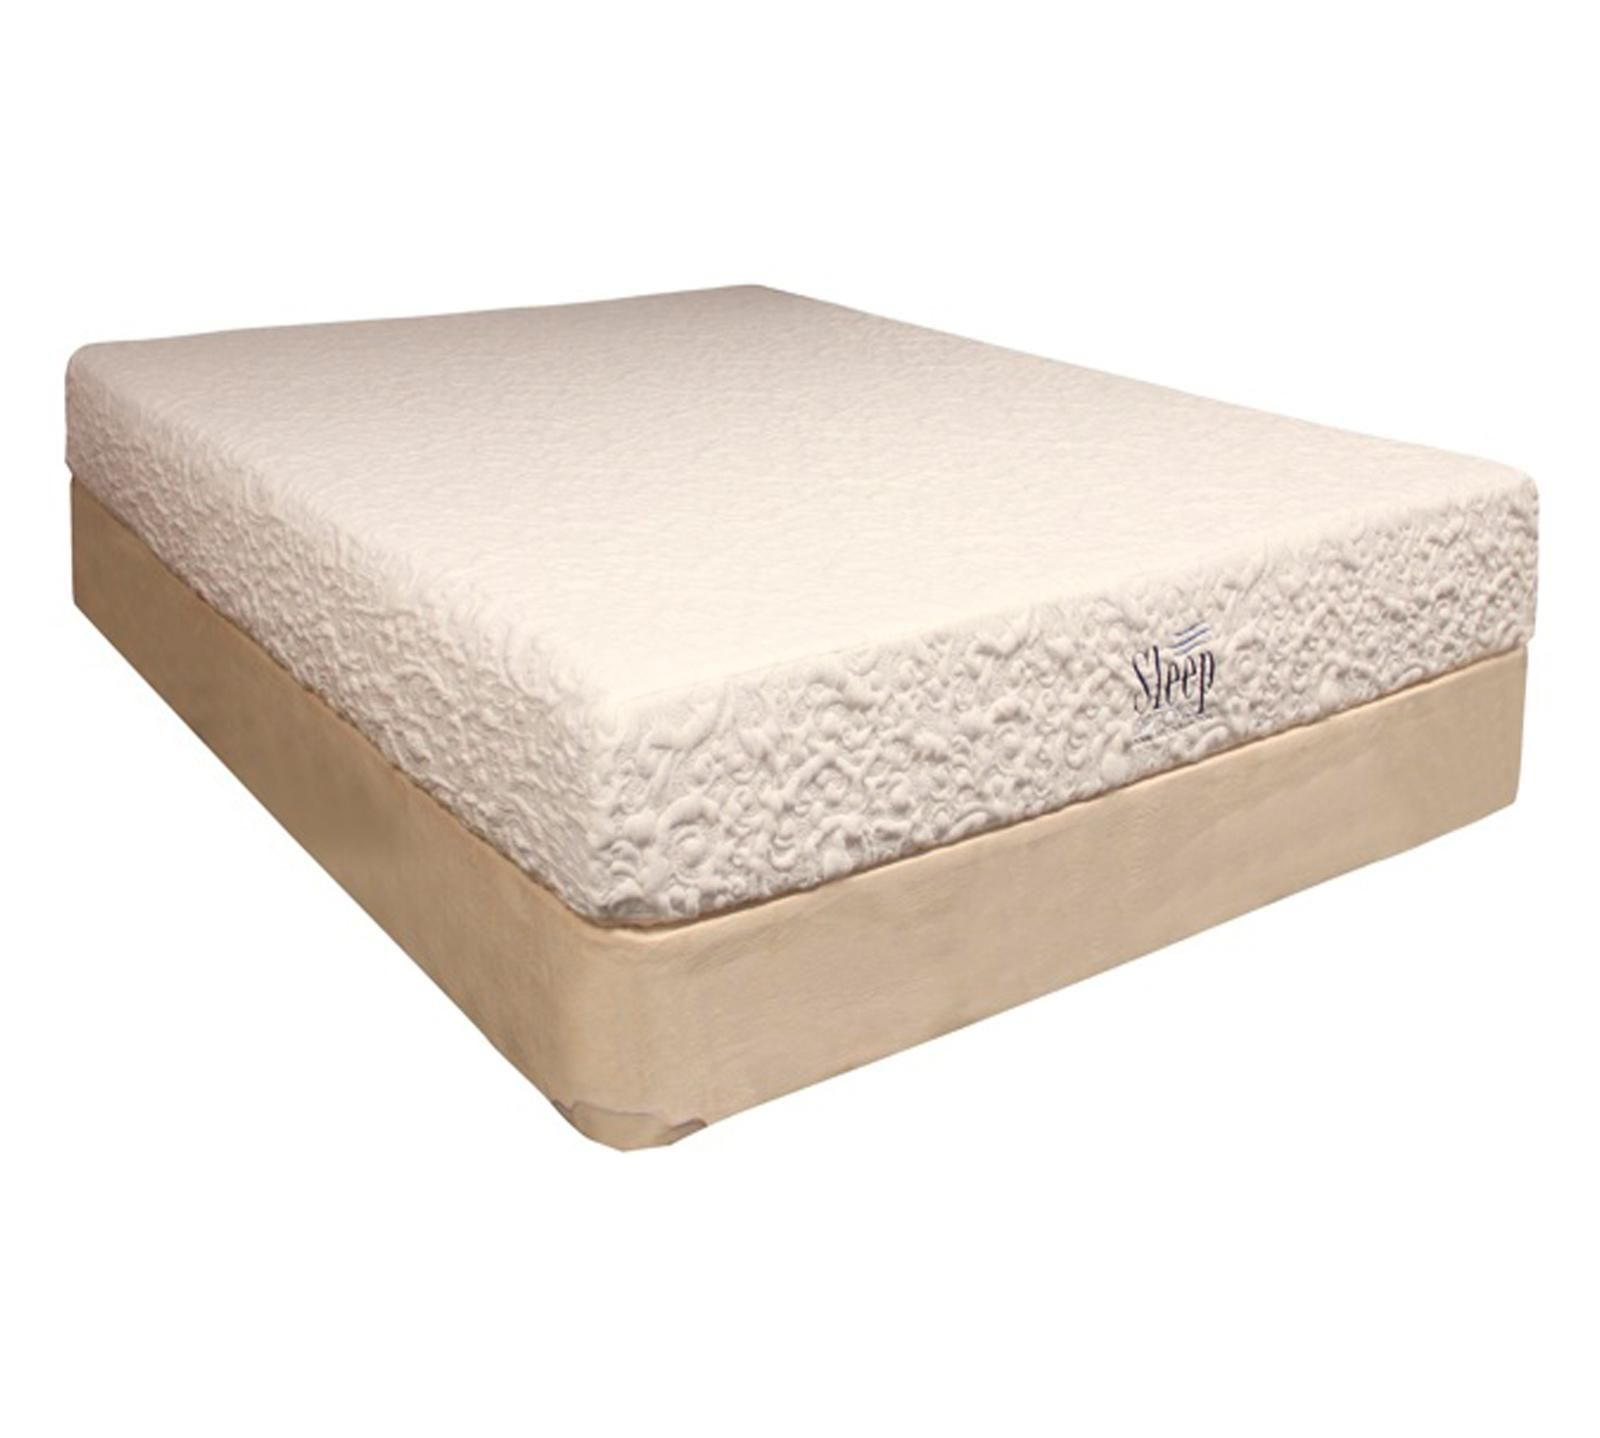 this plush mattress not only offers cooling comfort and support with